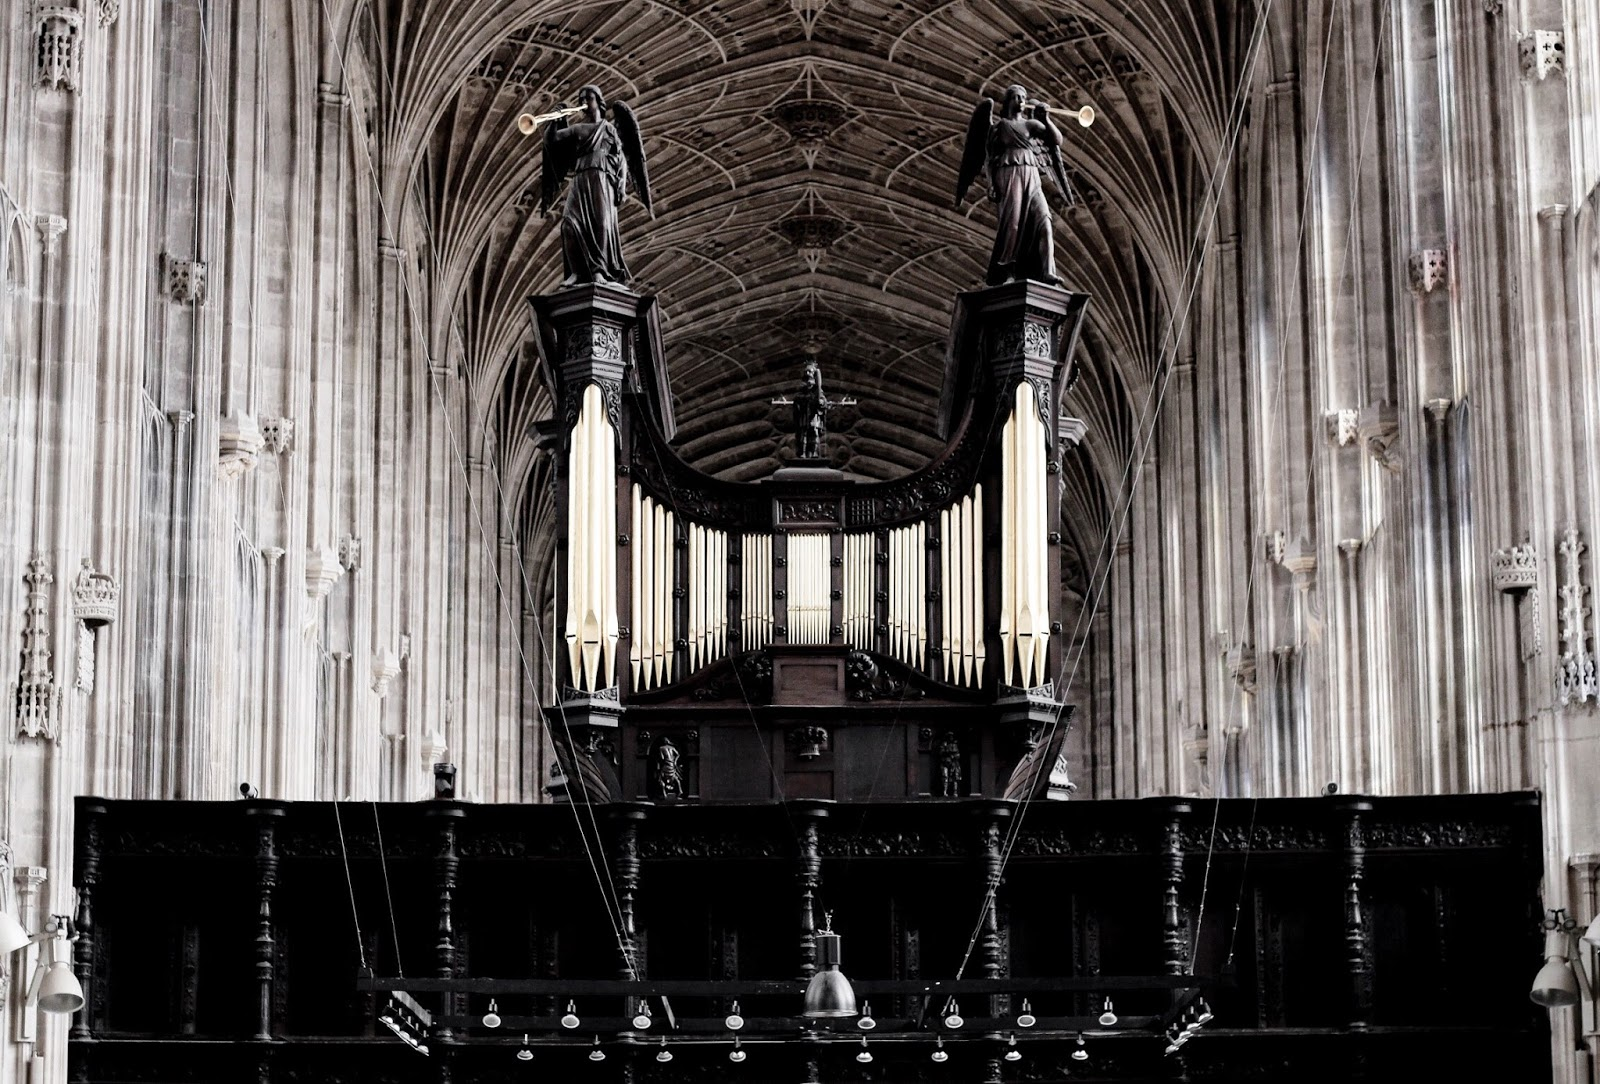 King's College Chapel Cambridge Organ Pipes